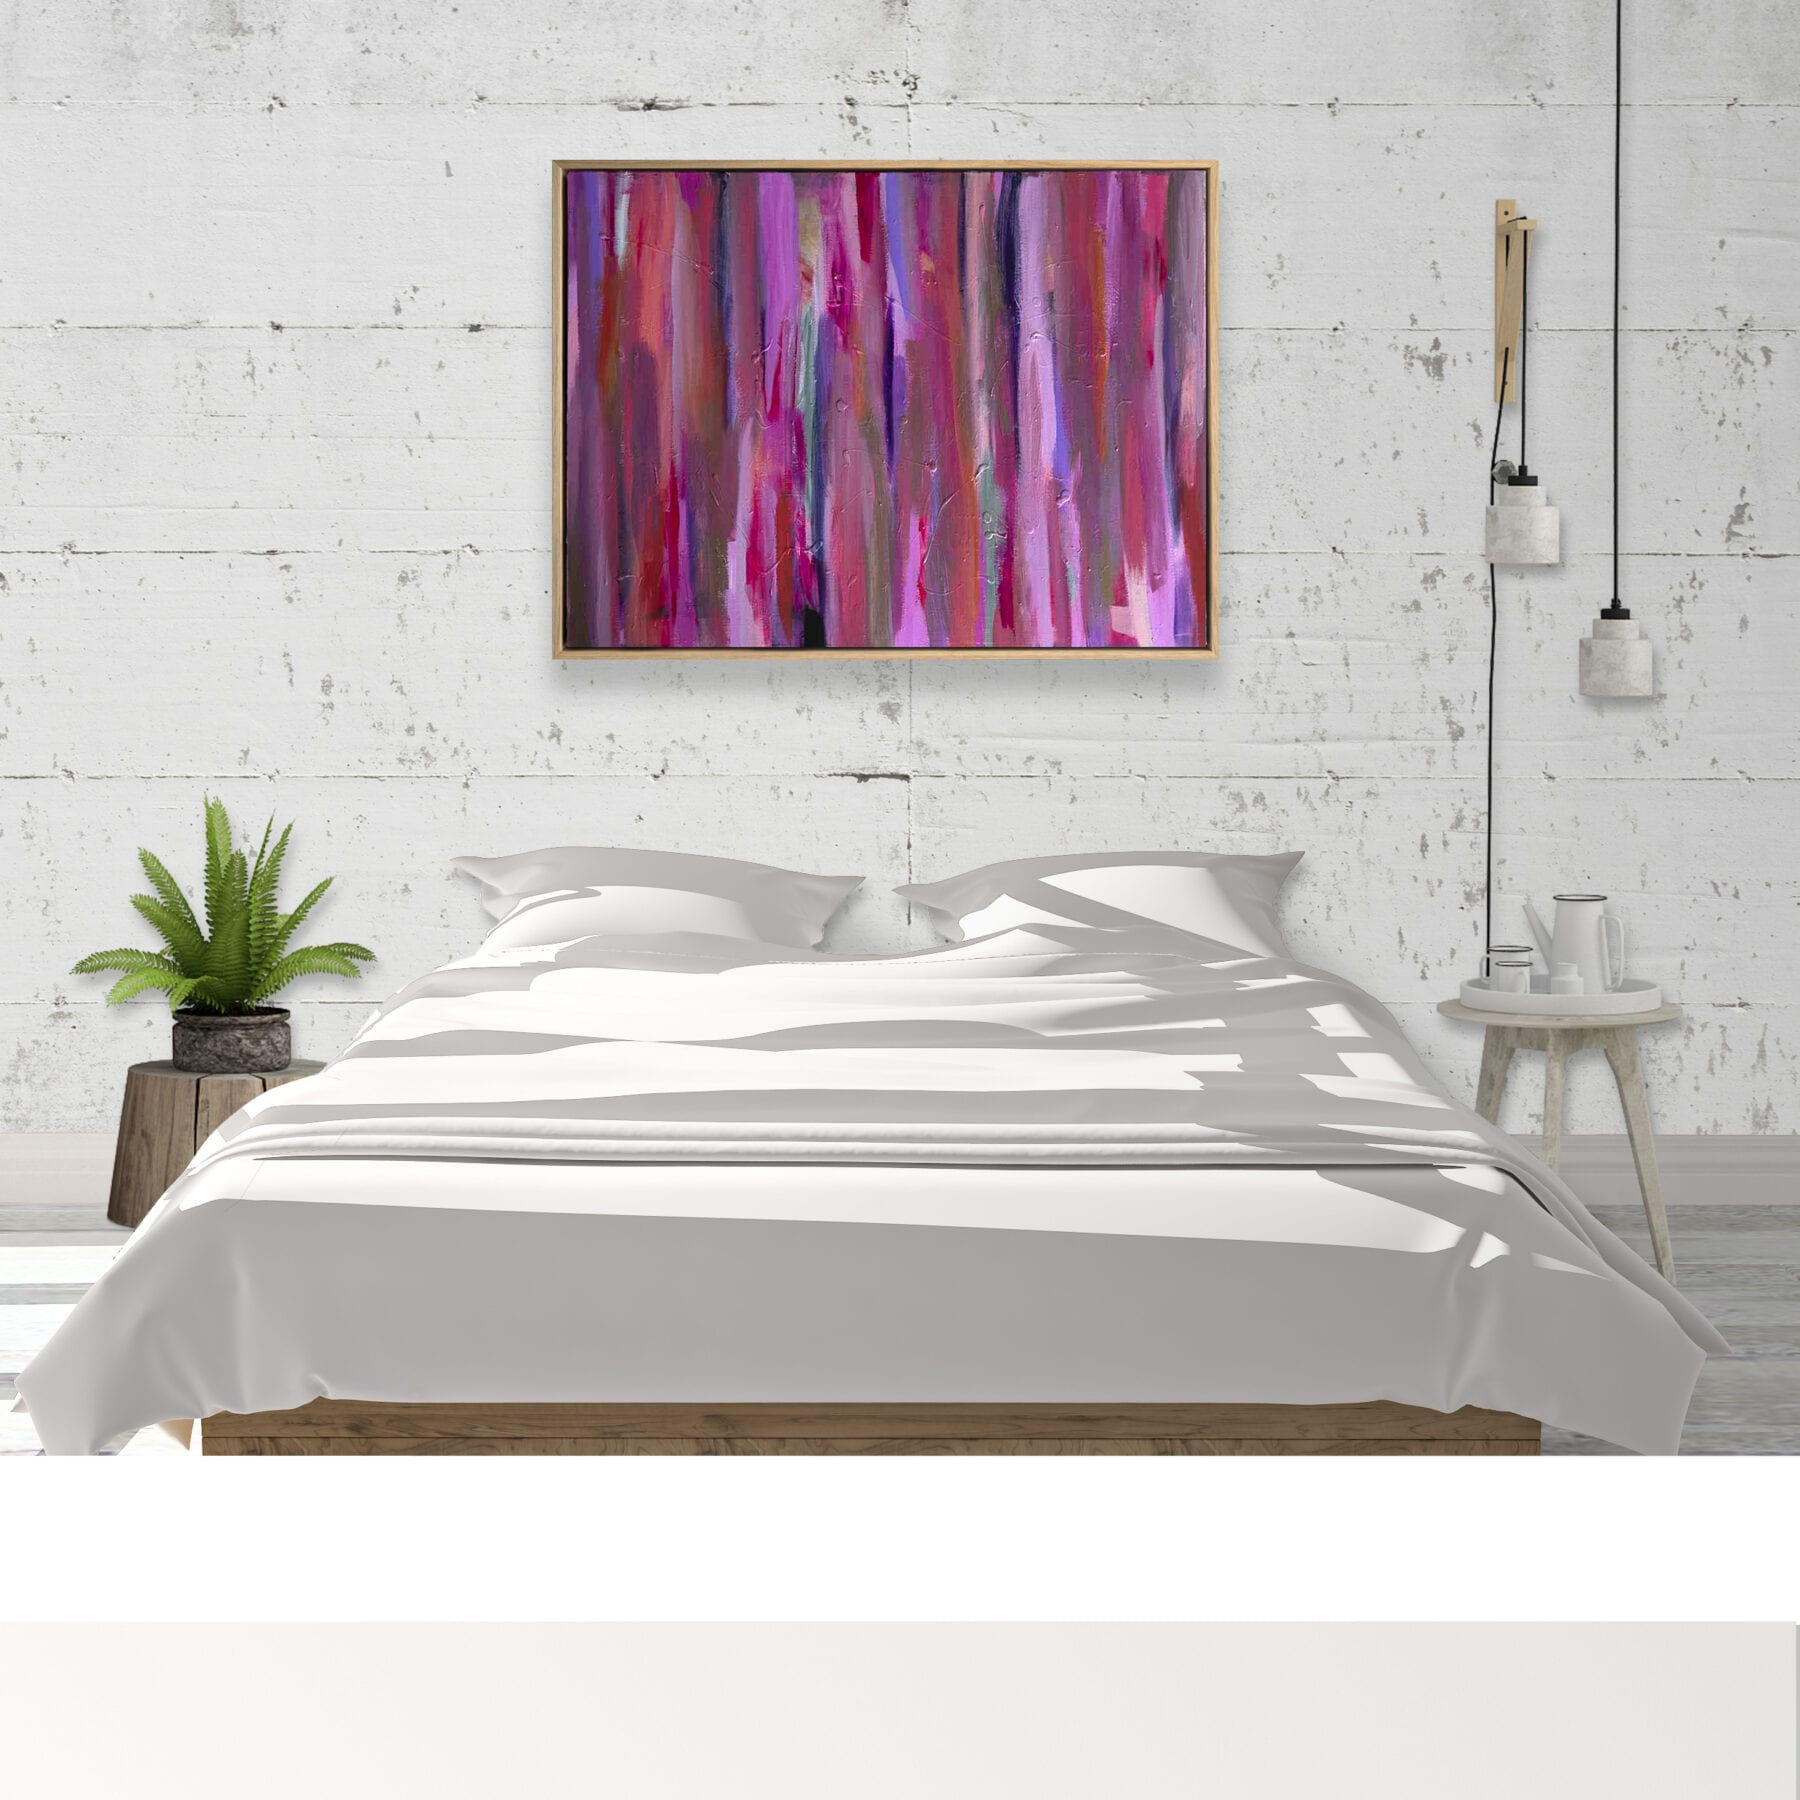 Pink Fiesta LifestyleWhite Bed Concrete Wall